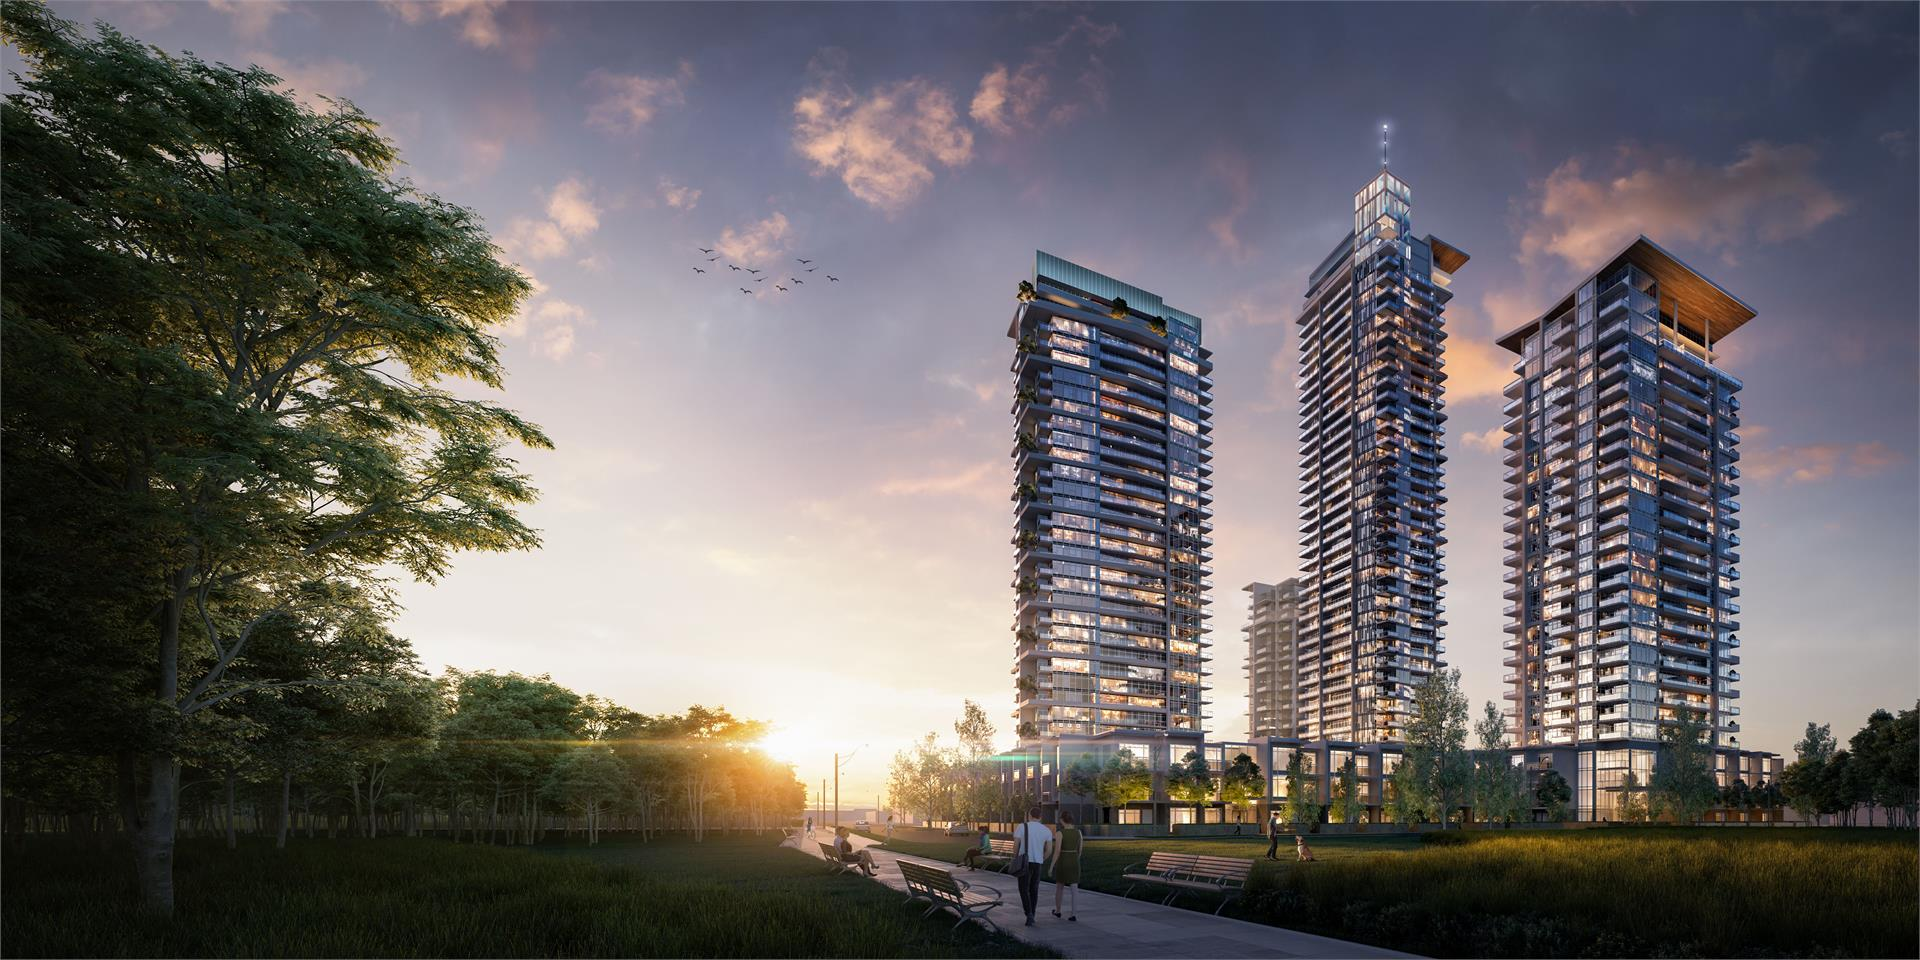 Eclipse At Lumina Brentwood By Thind Properties – Prices, Plans, Availability